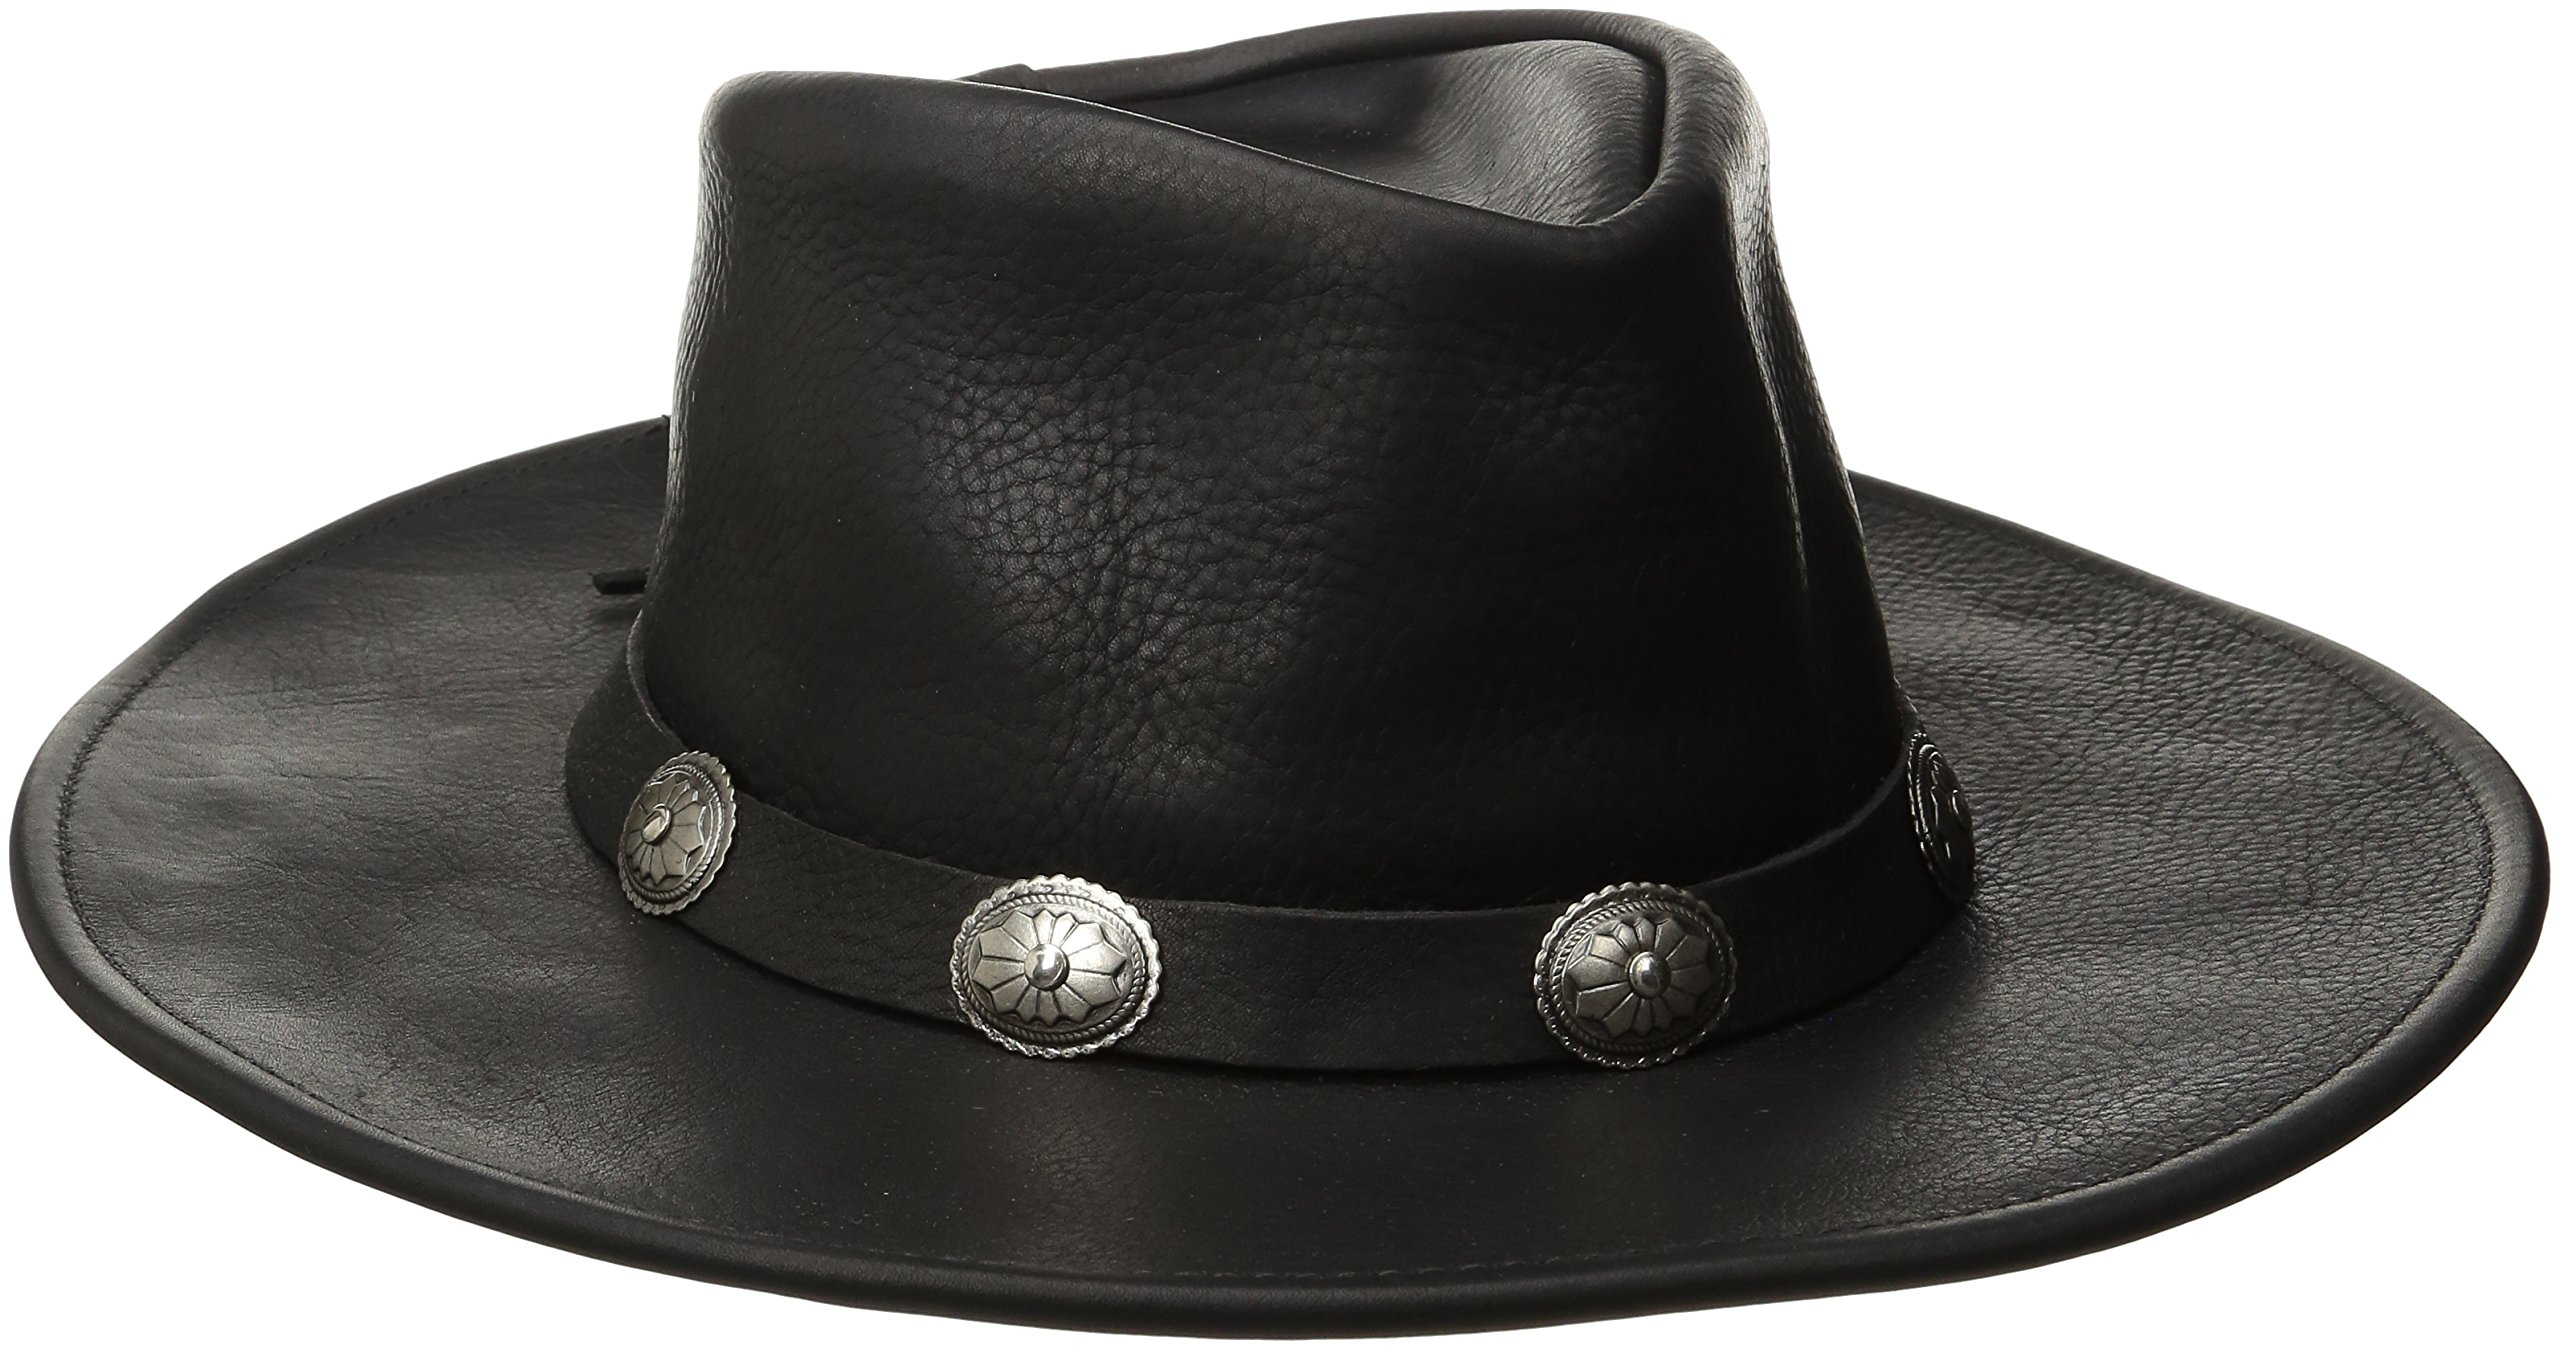 Henschel Walker, Full Grain Leather, Shapeable Brim, Conche Band, Black, Medium